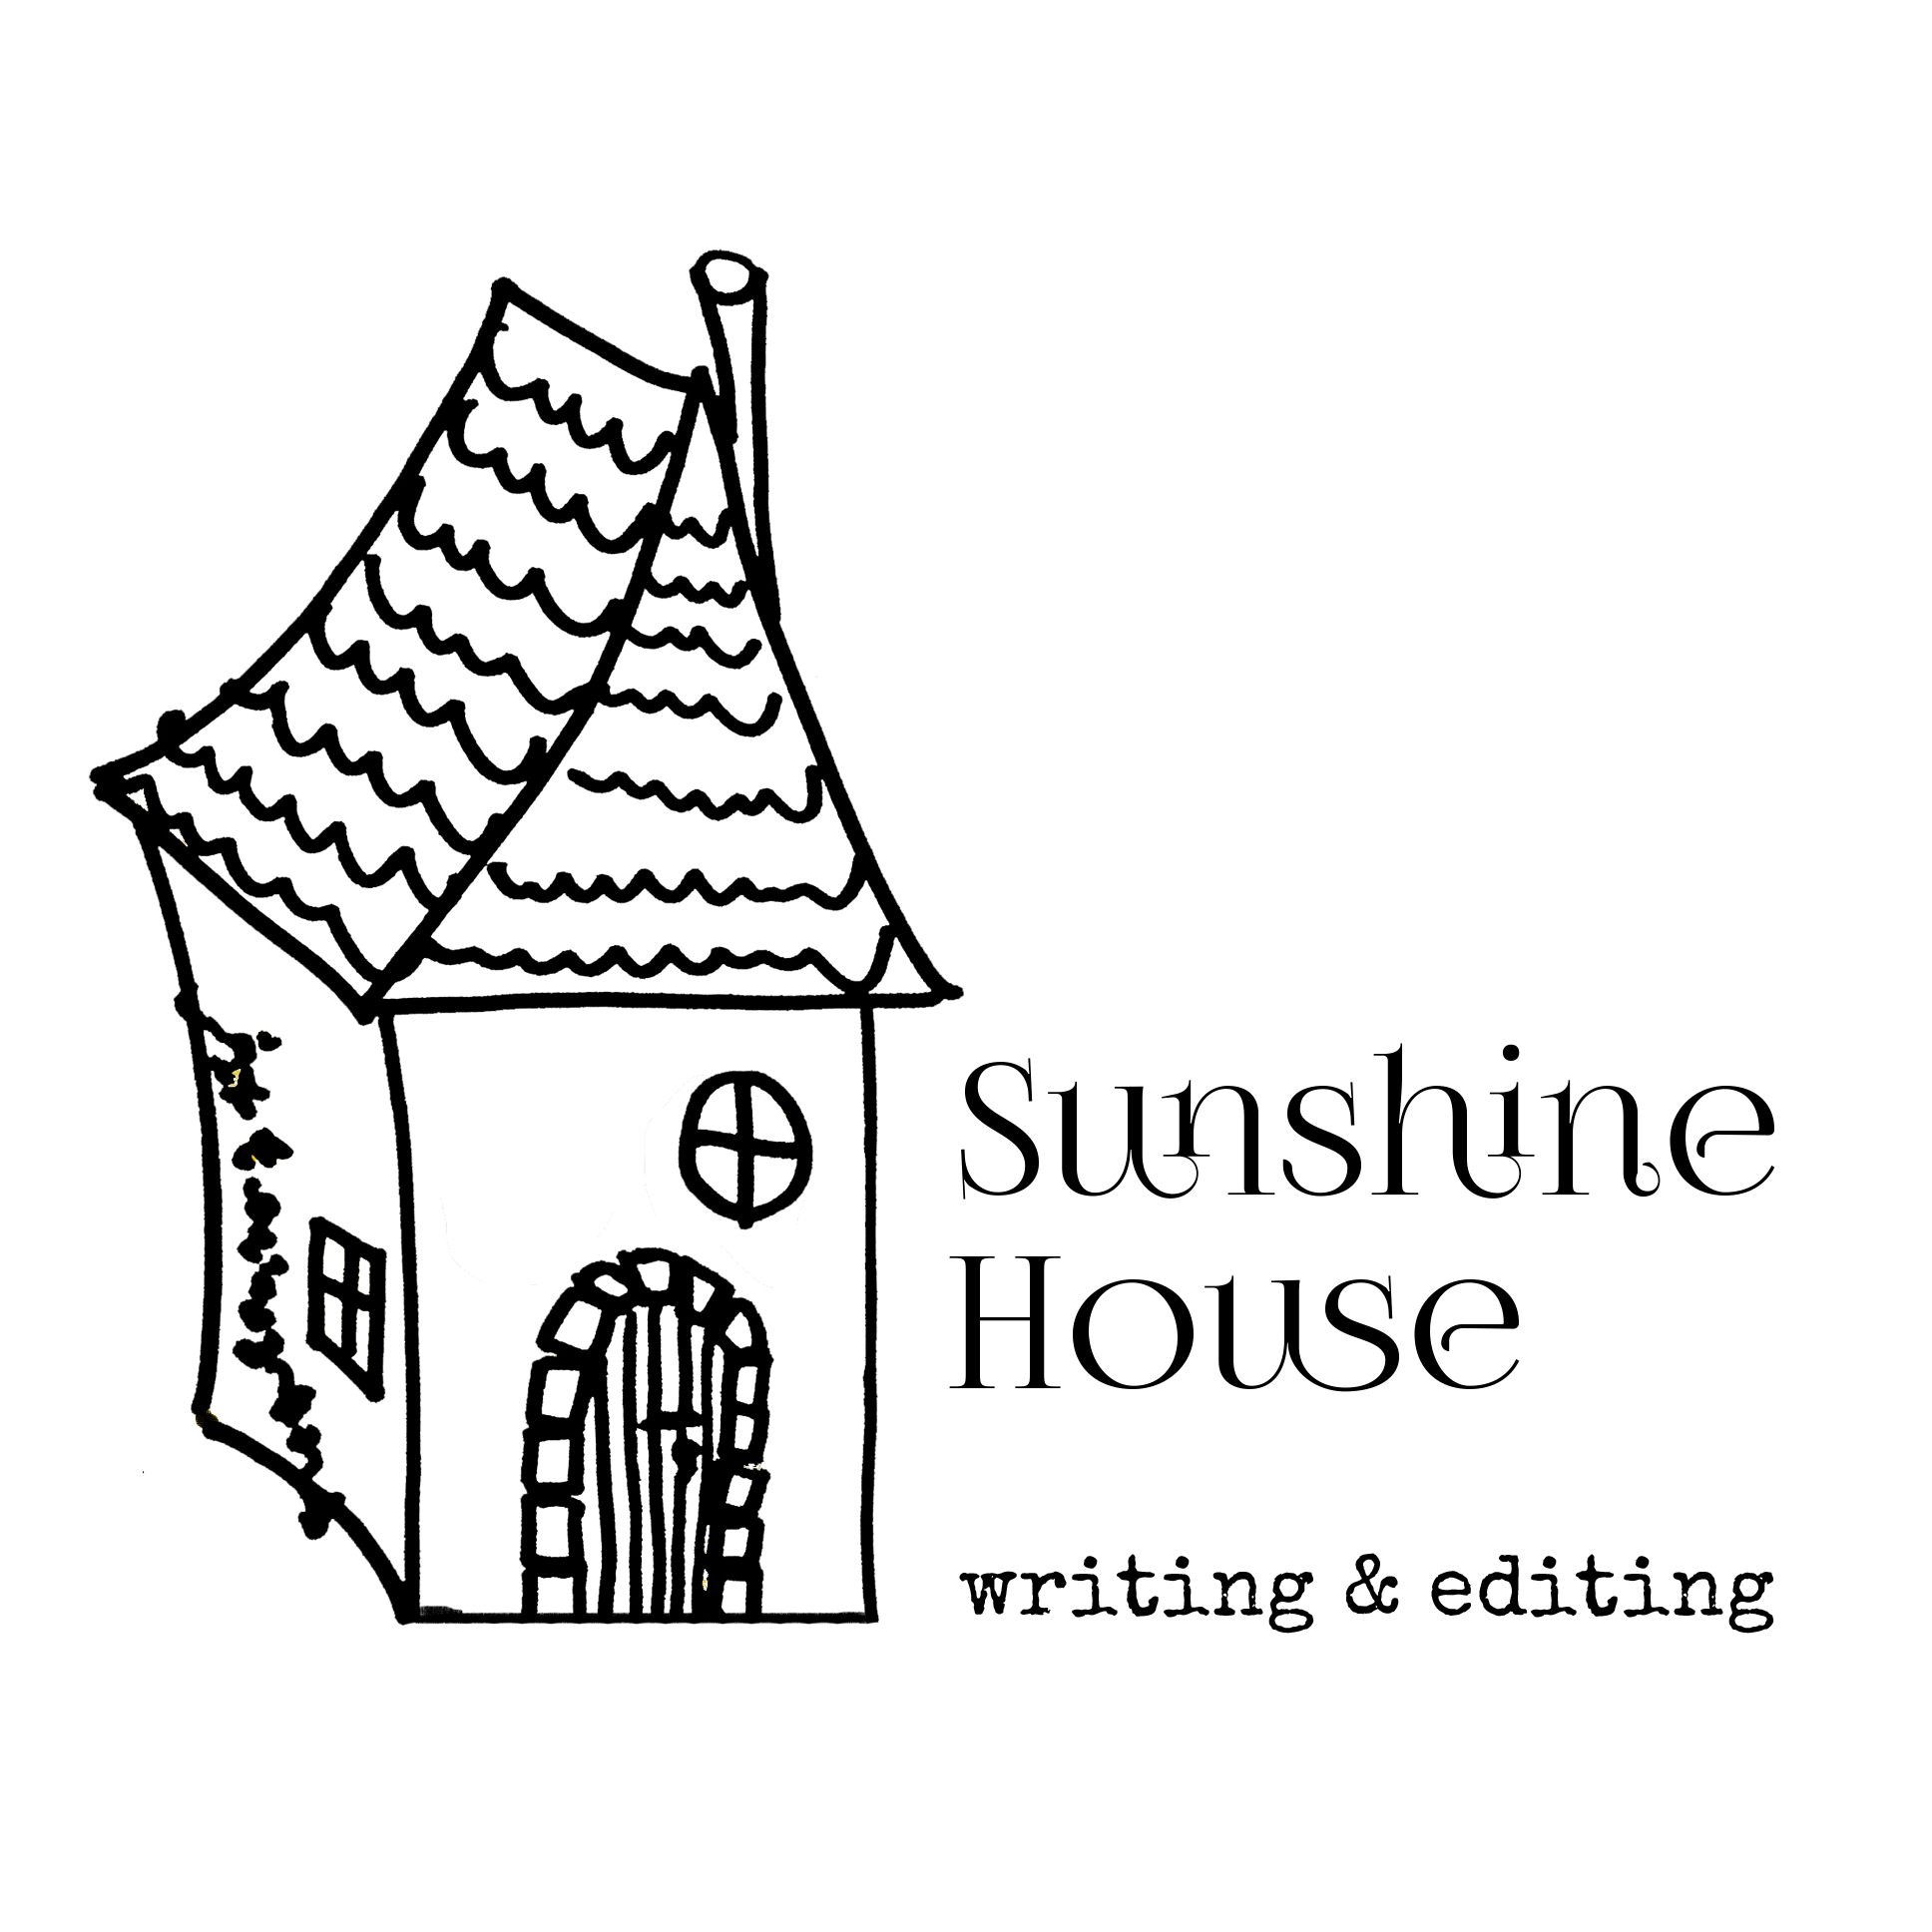 House clipart template picture library library House Drawing Template at GetDrawings.com | Free for personal use ... picture library library